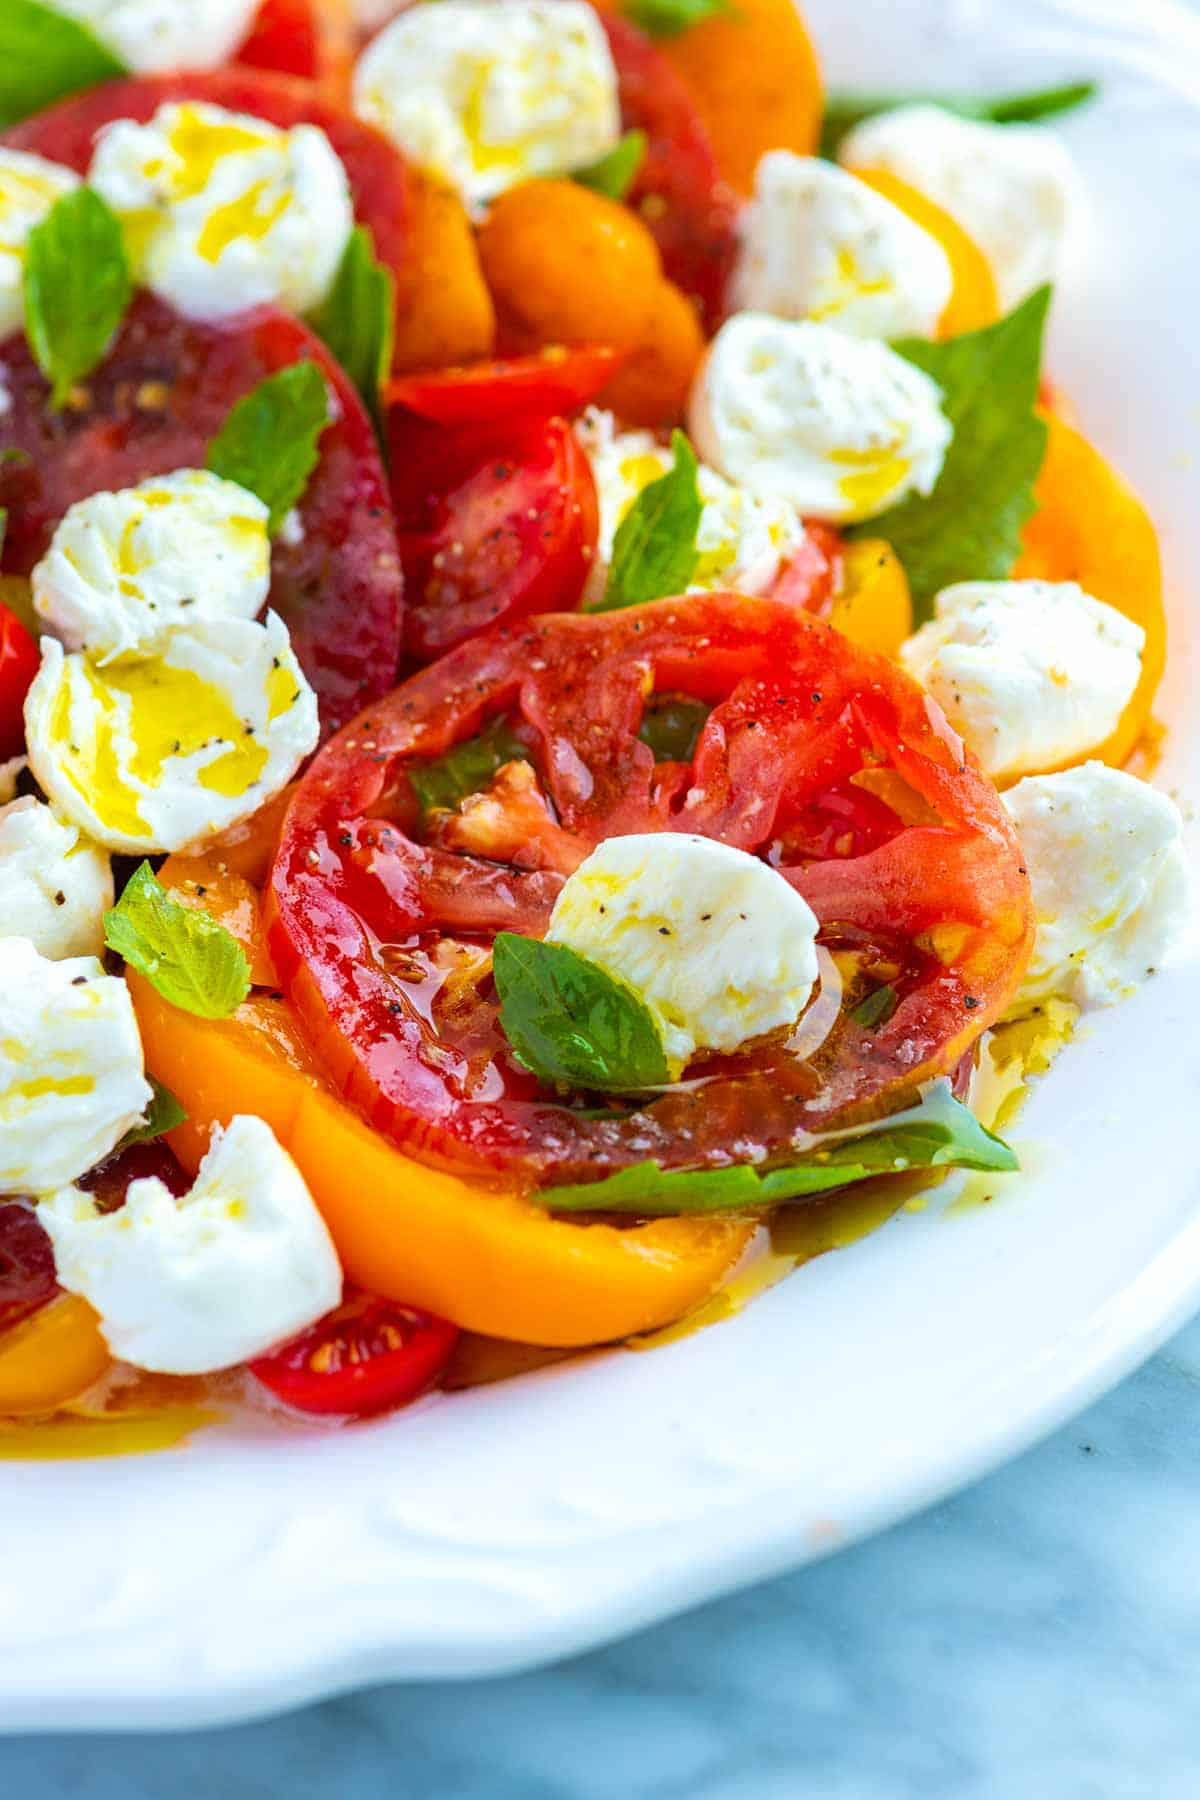 How to Make the Best Caprese Salad with Tomatoes, Mozzarella, and Basil